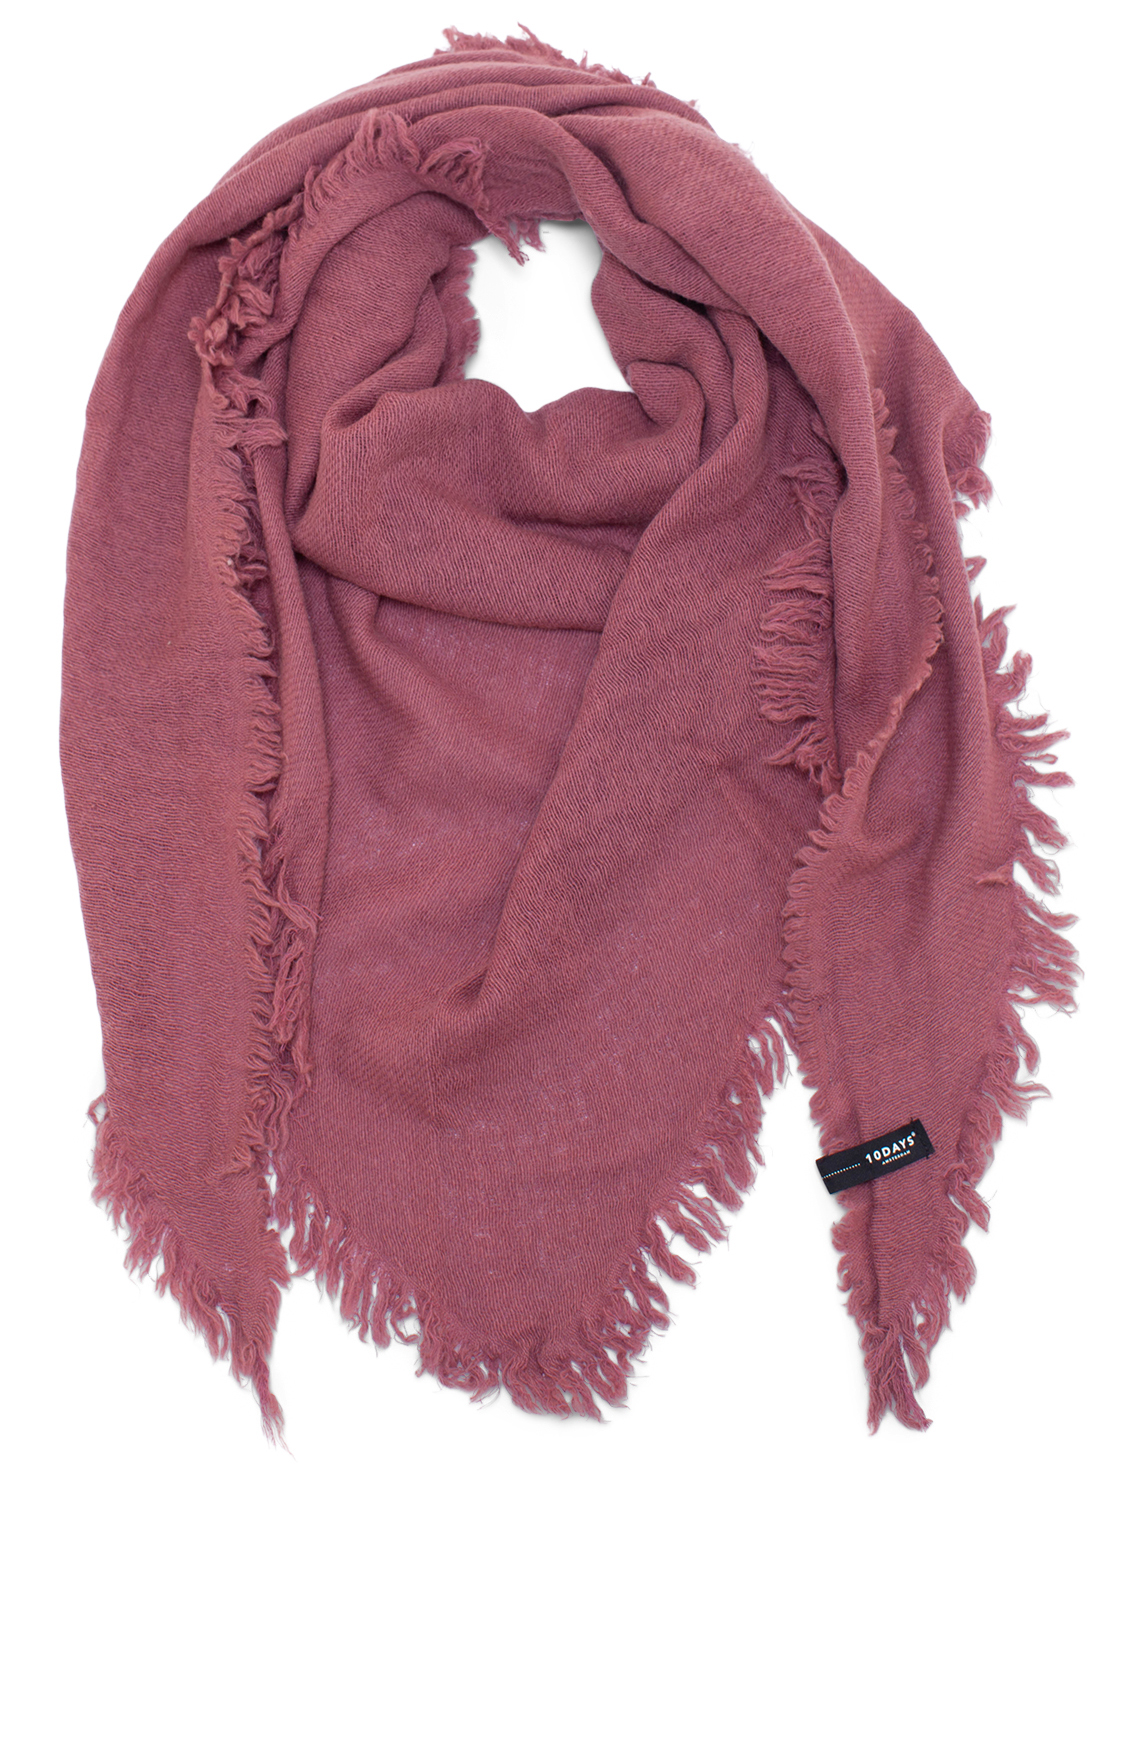 10 Days Dames Driehoekige shawl roze